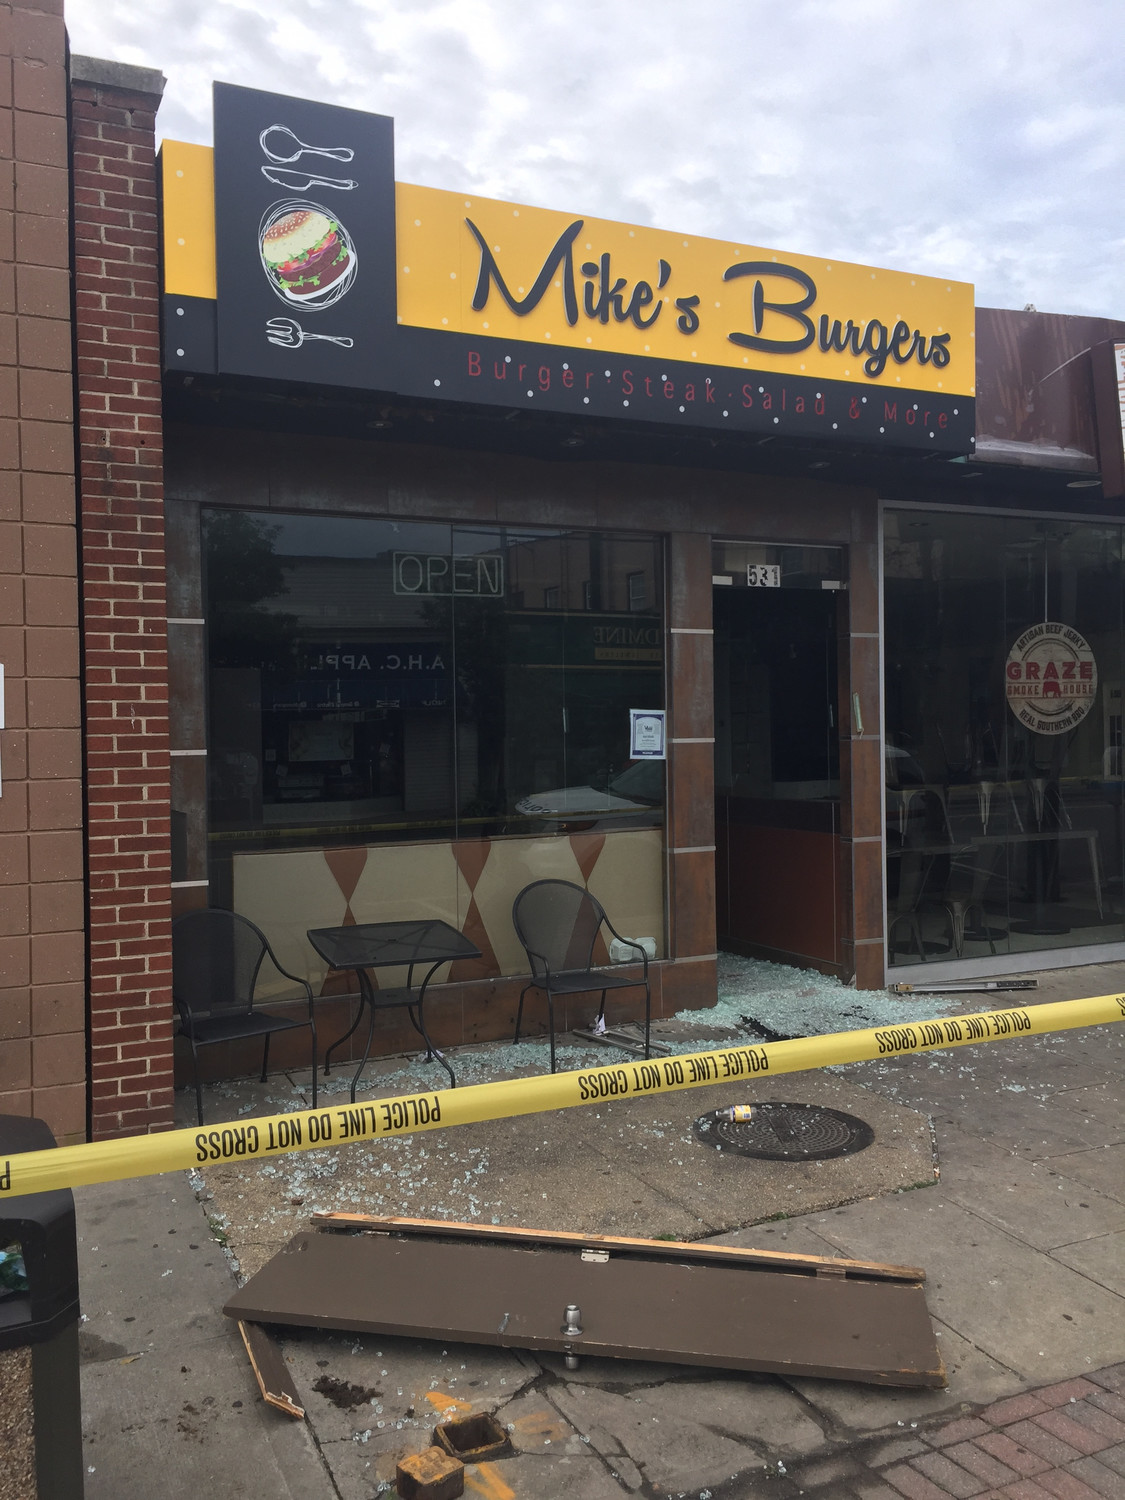 Mike's Burgers at 531 Central Ave. in Cedarhurst was severely damaged by fire on June 20.